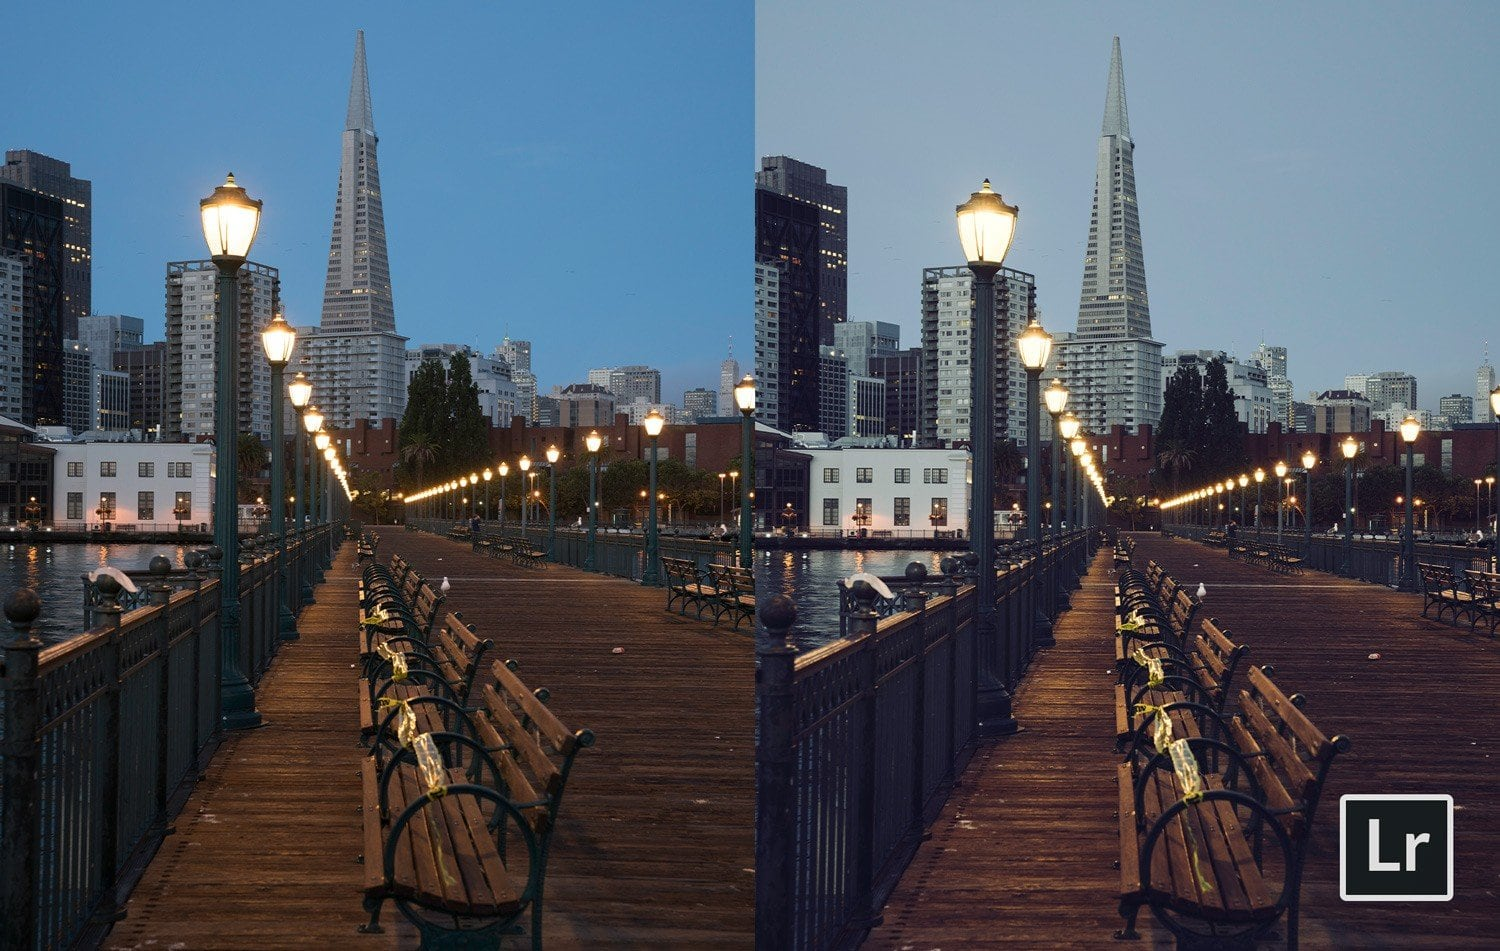 Free-Lightroom-Preset-Film-Emulation-Before-and-After-Presetpro